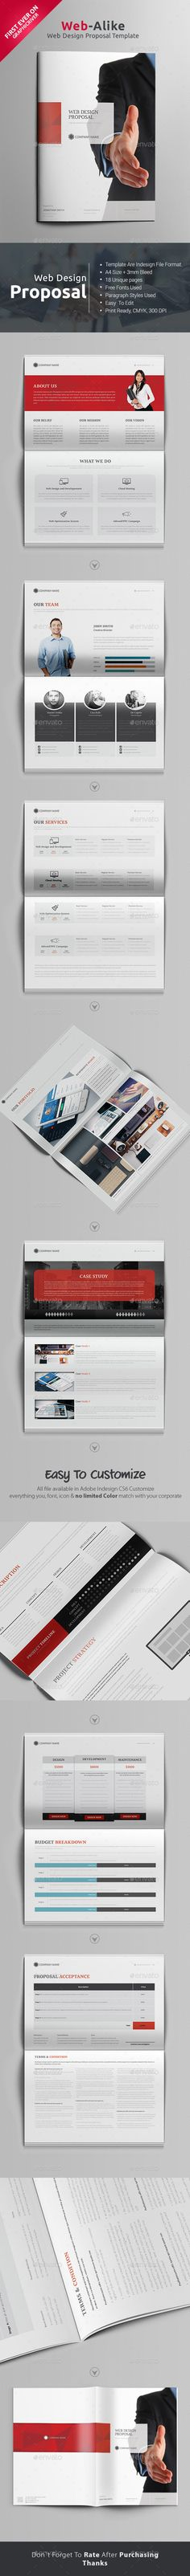 A web design project proposal for Travelgram PH Travel Agency - what is in a design proposal